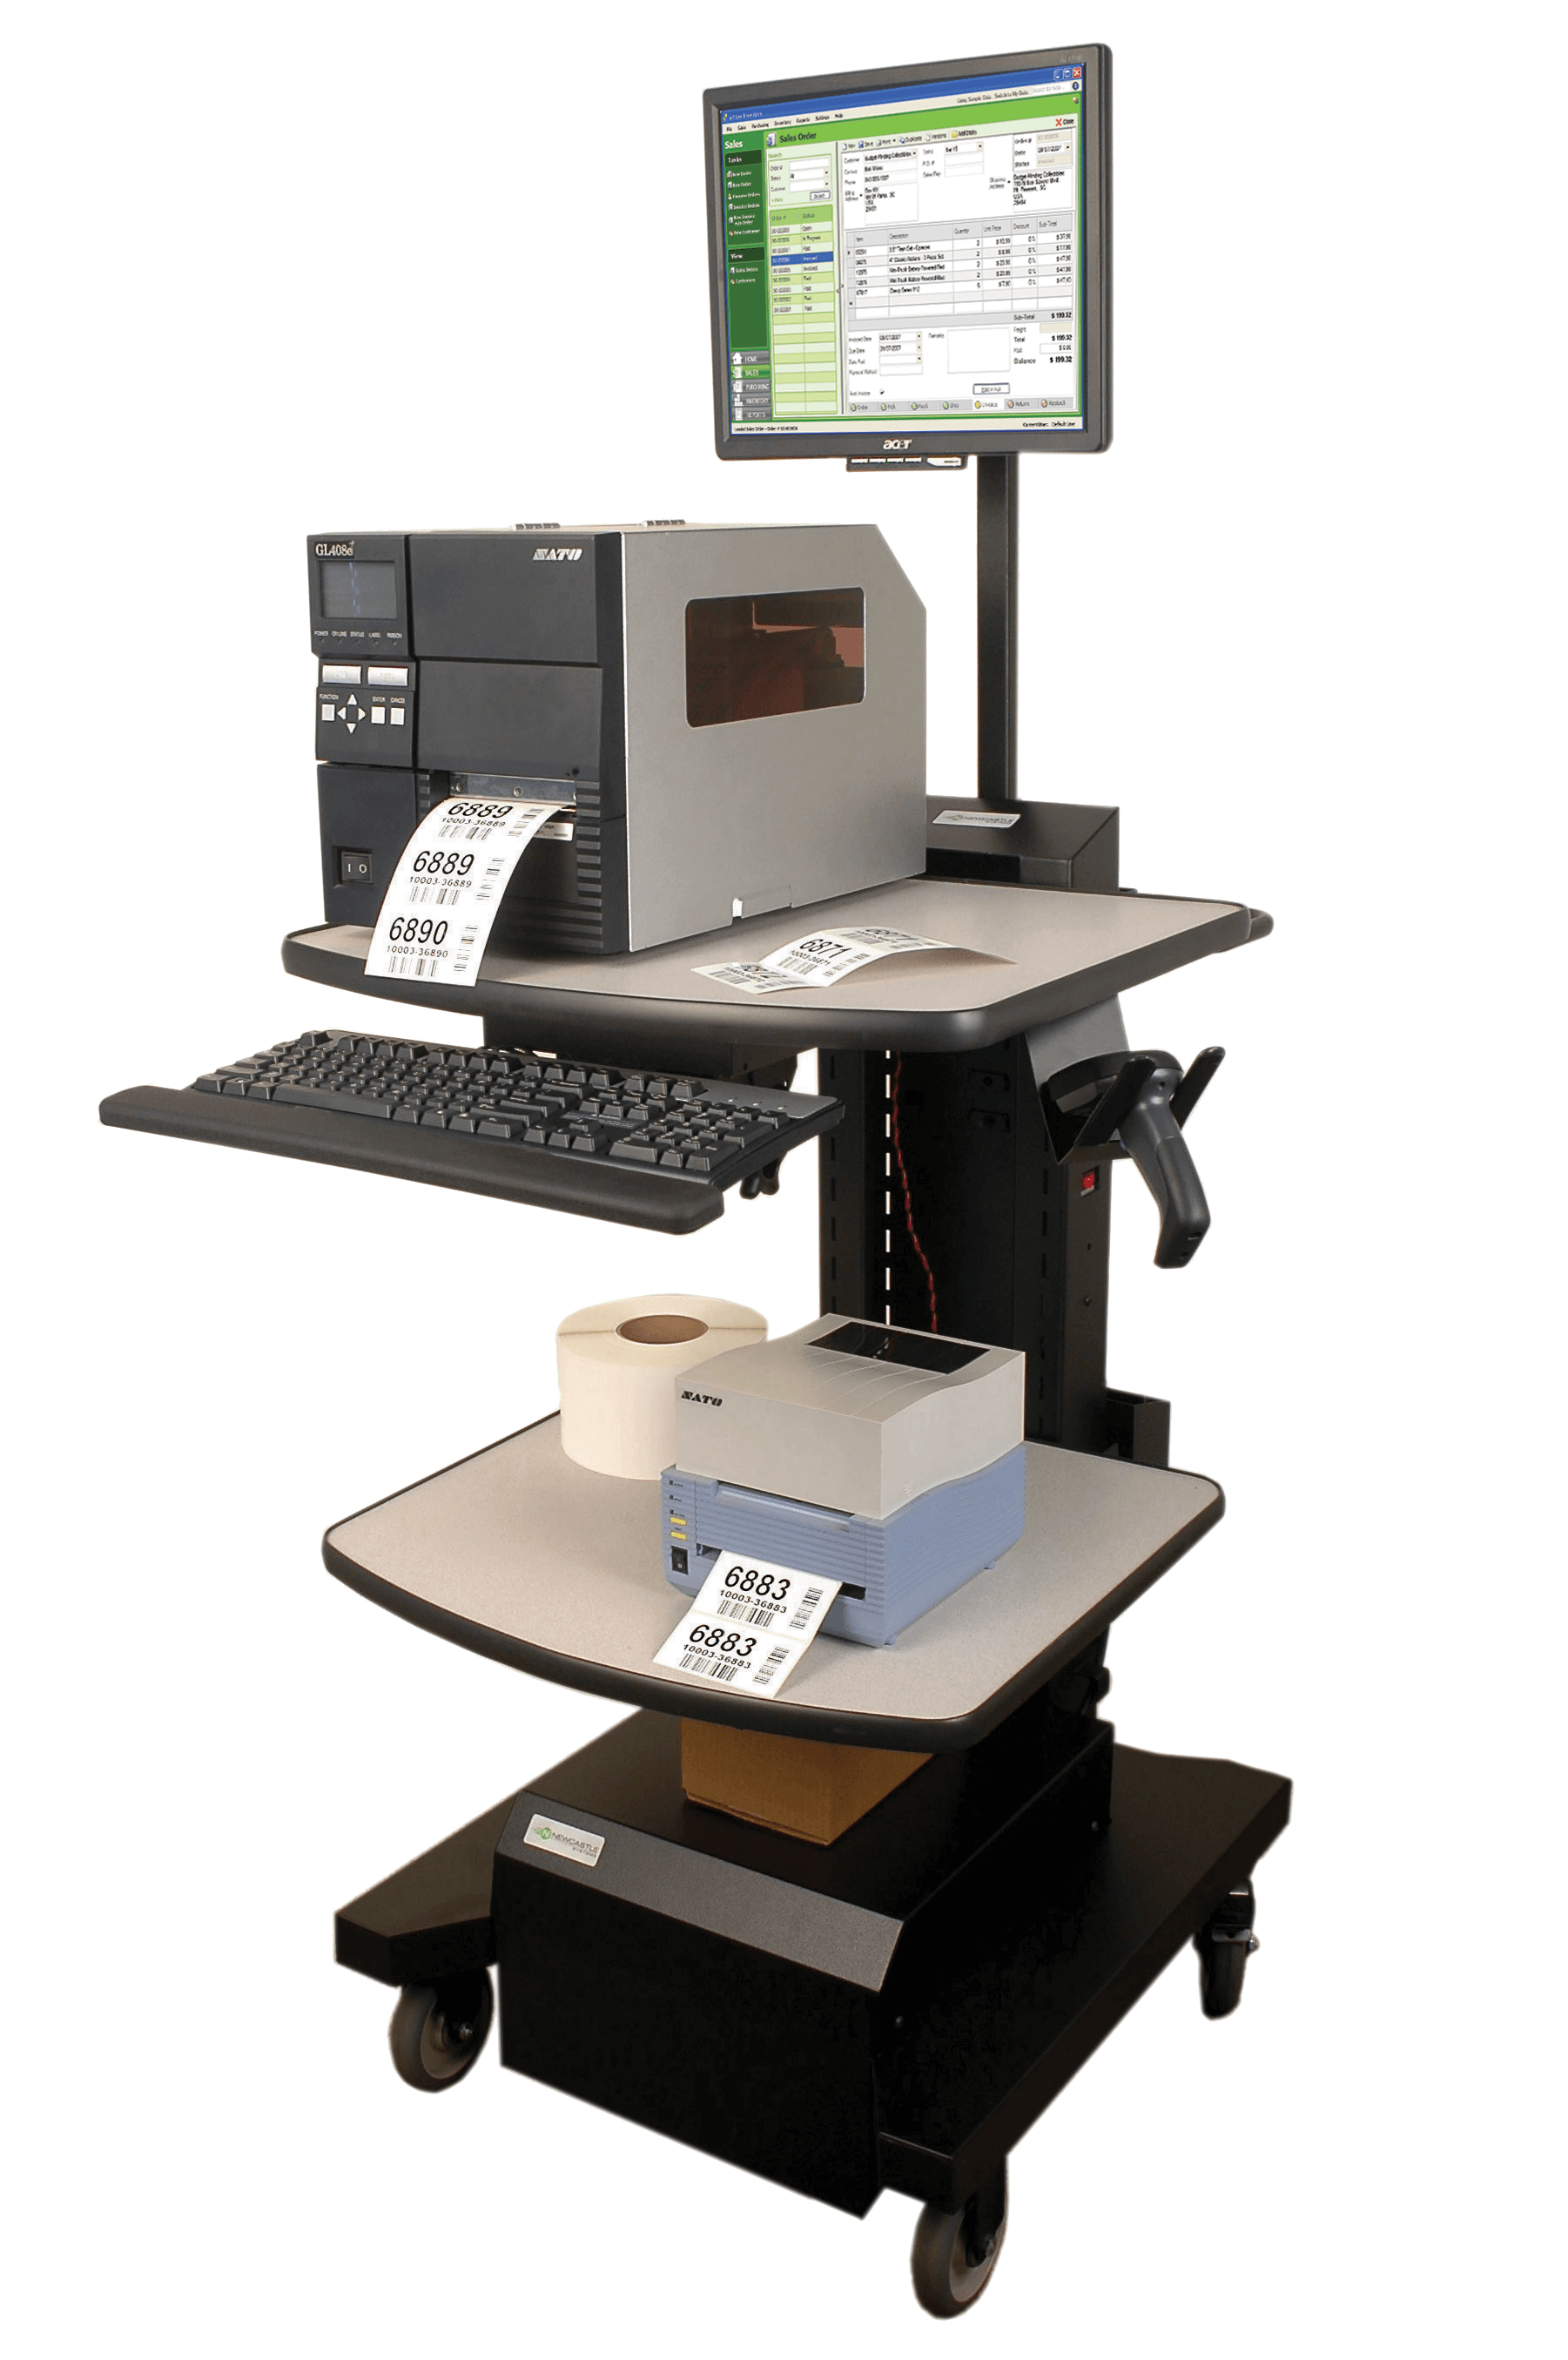 NB Series Mobile Powered Workstation by Newcastle Systems